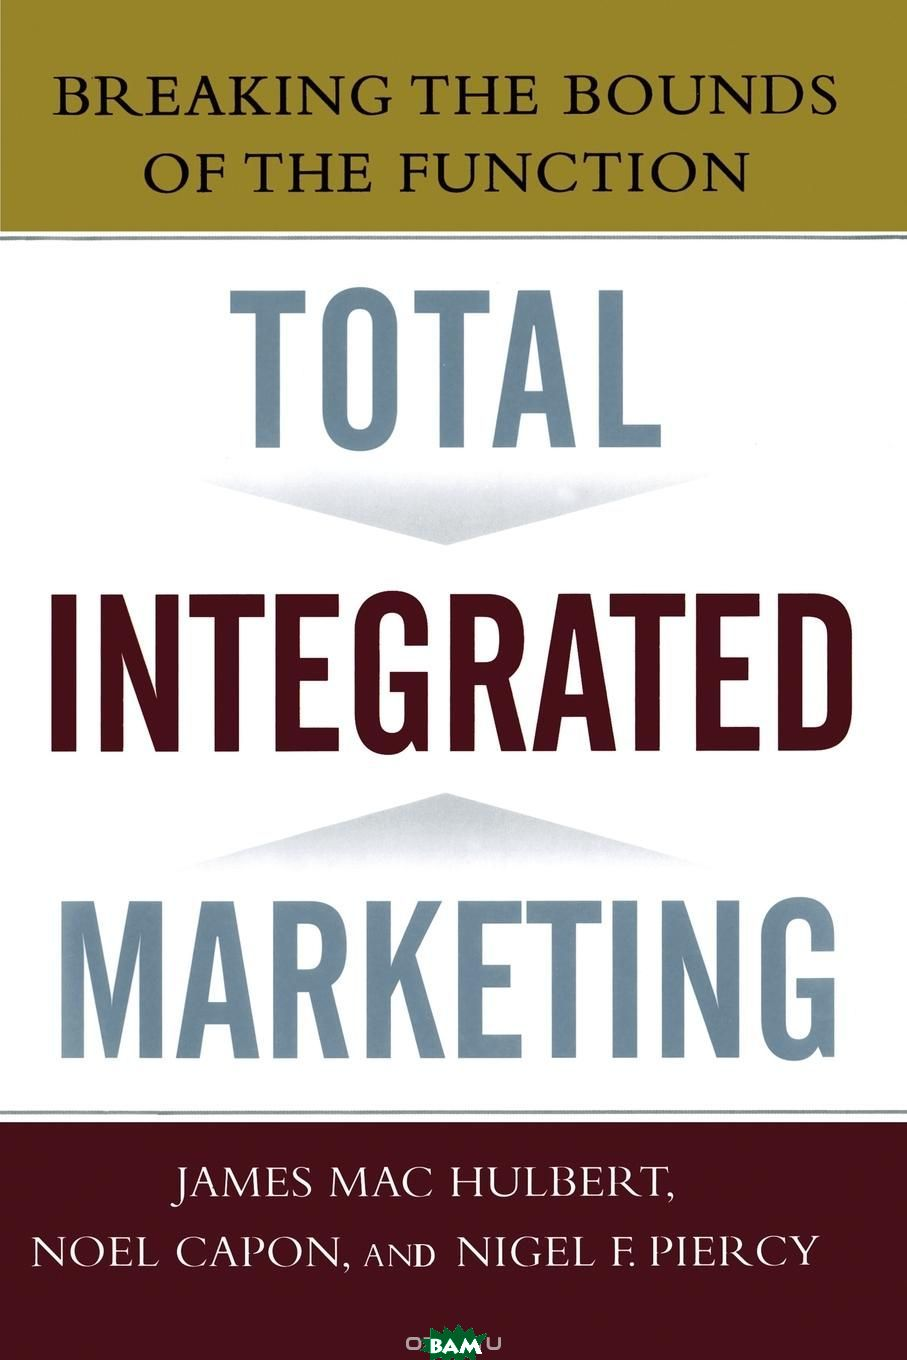 Total Integrated Marketing. Breaking the Bounds of the Function